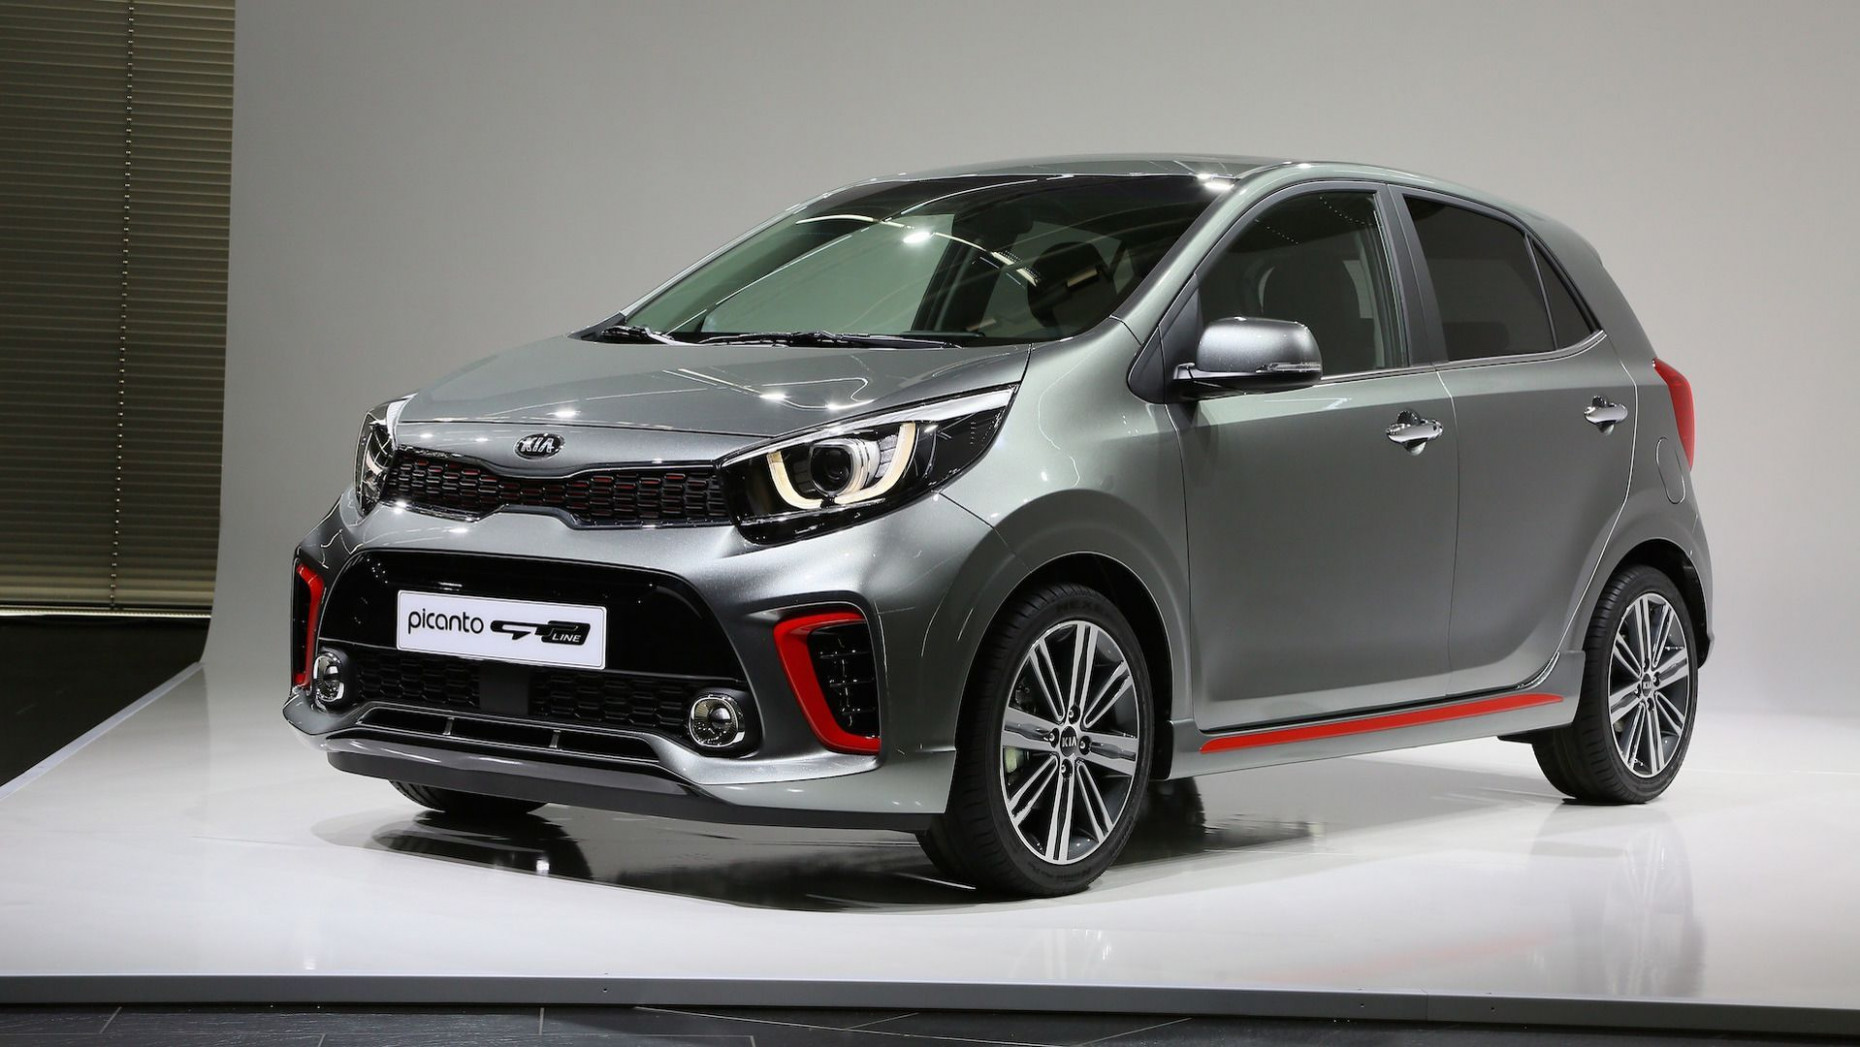 Kia Picanto Gt Line 8 New Review (With images) | Kia picanto ...